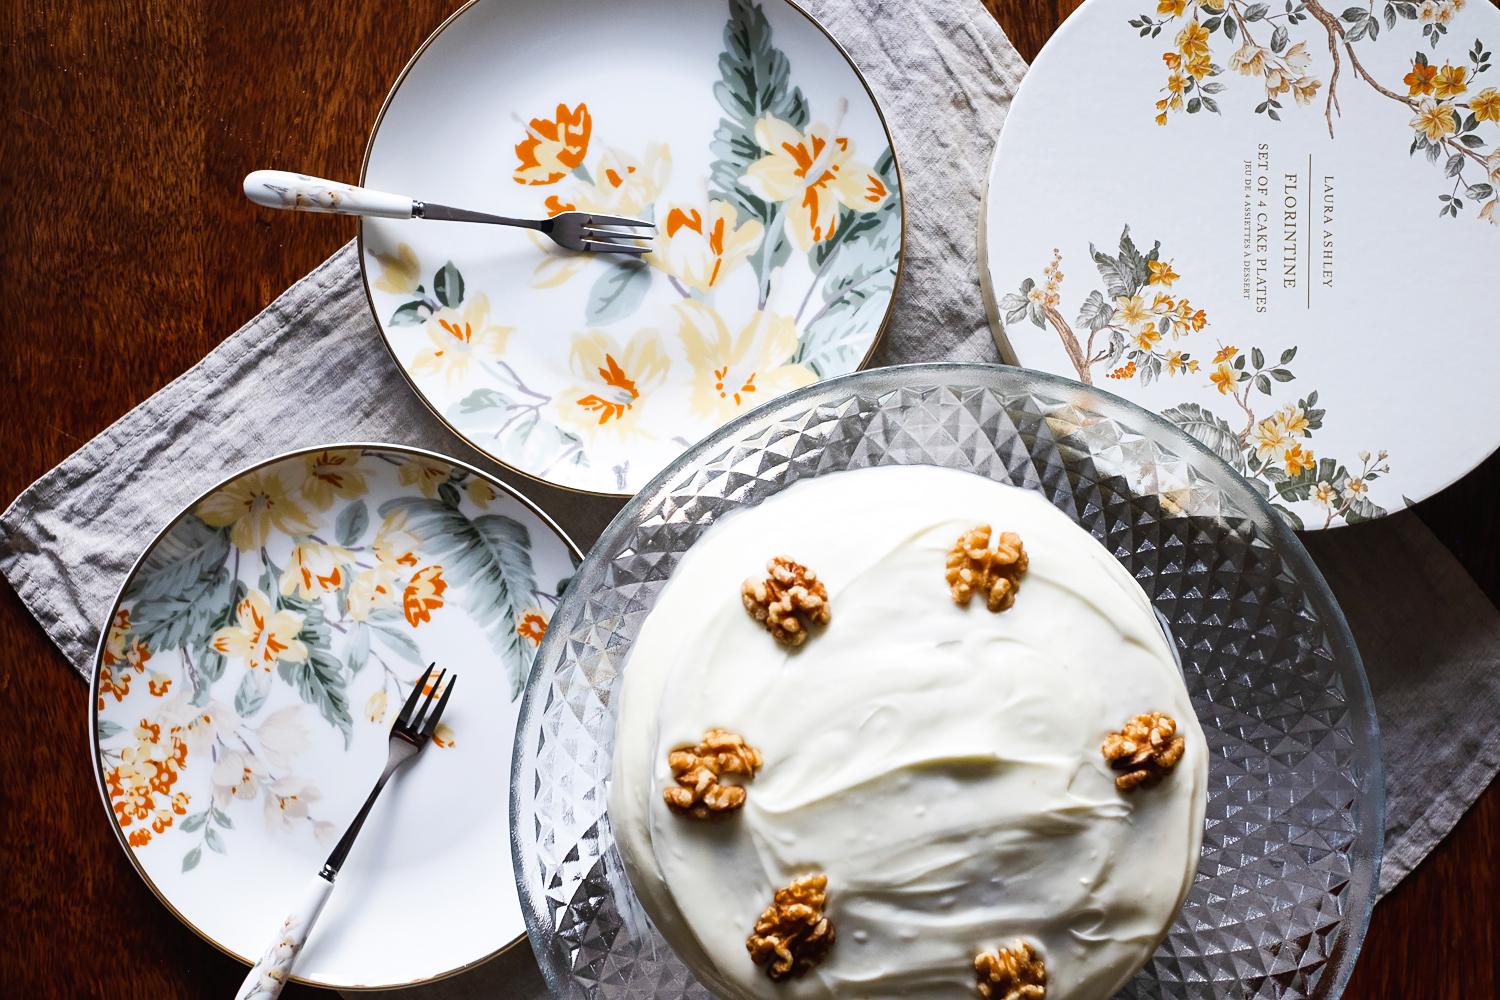 Carrot-Cake-Laura-Ashley-Florentine-3